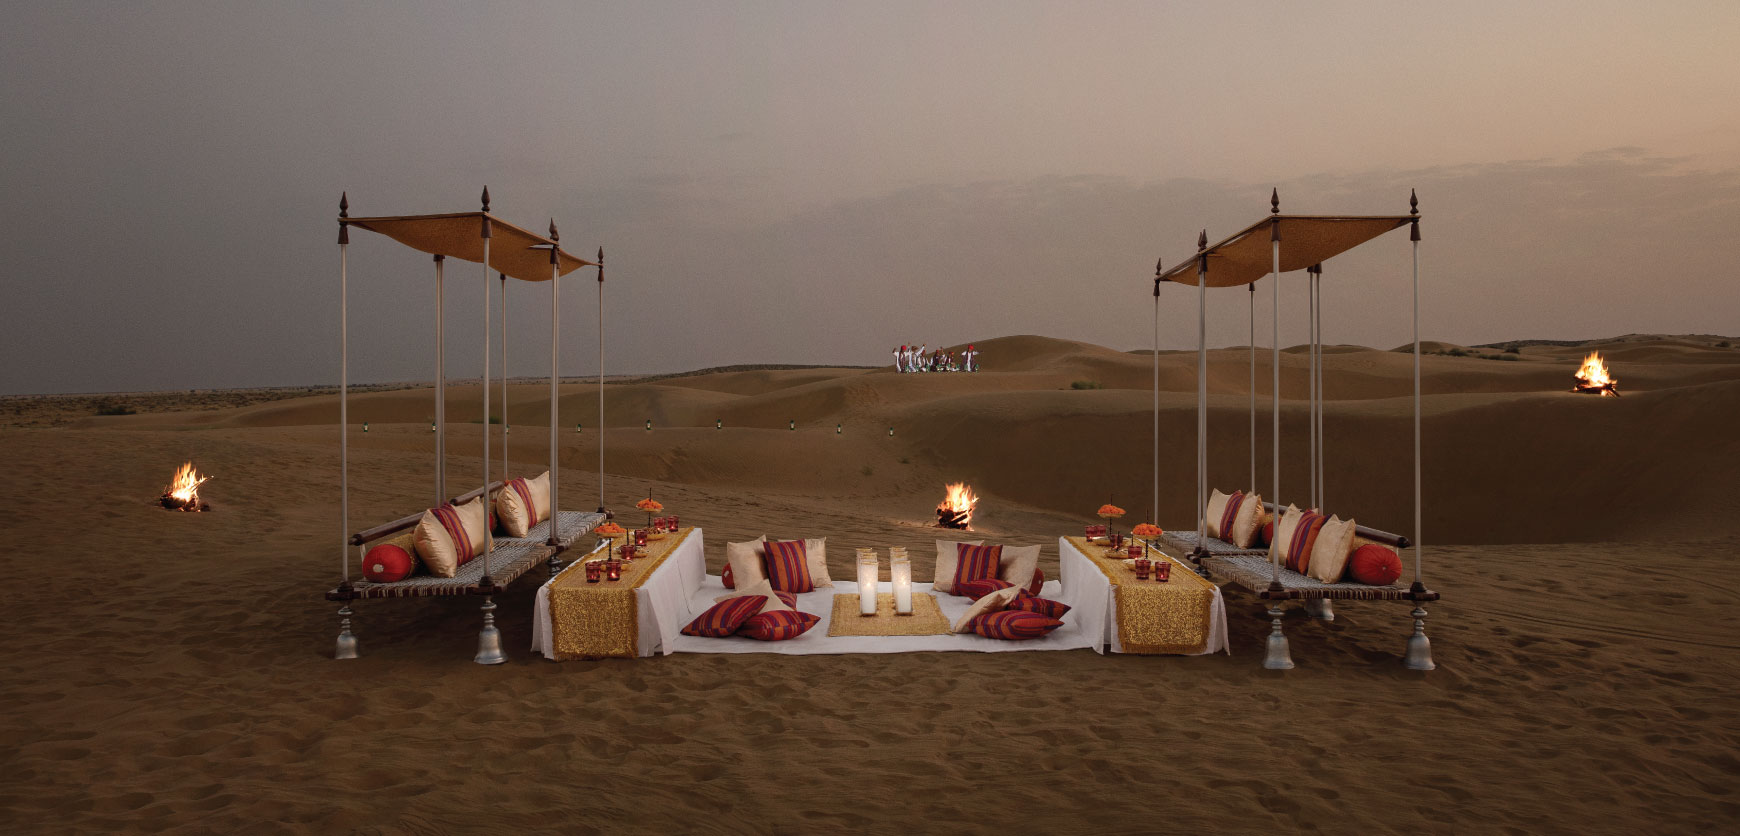 Experiences at Suryagarh Dinner on the Dunes